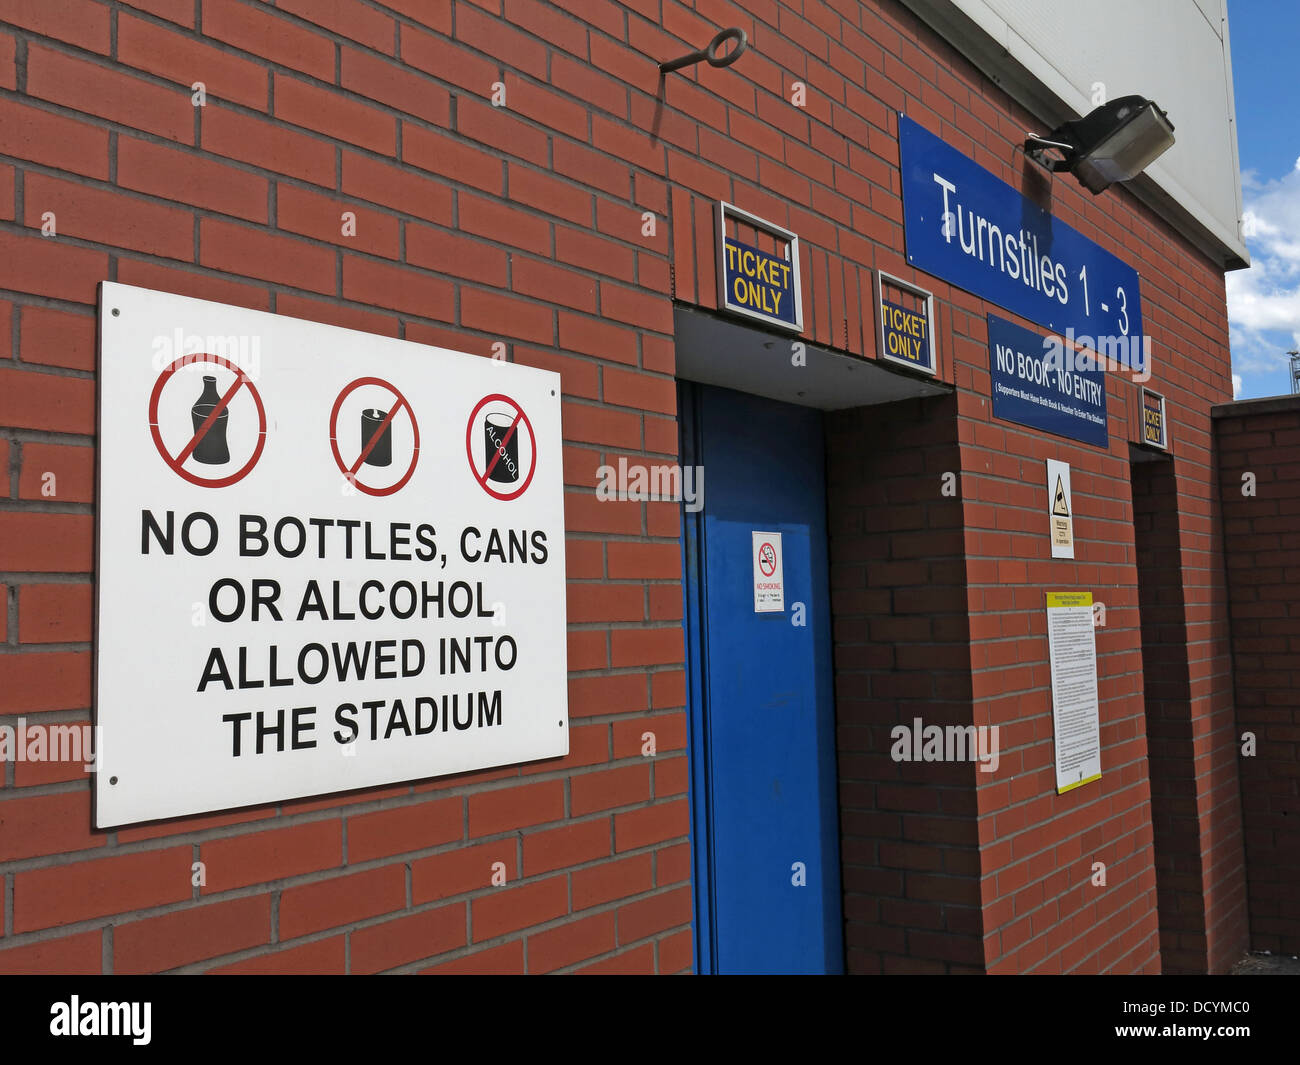 Warrinton Rugby League FC No Alcohol in ground policy, Cheshire England UK - Stock Image